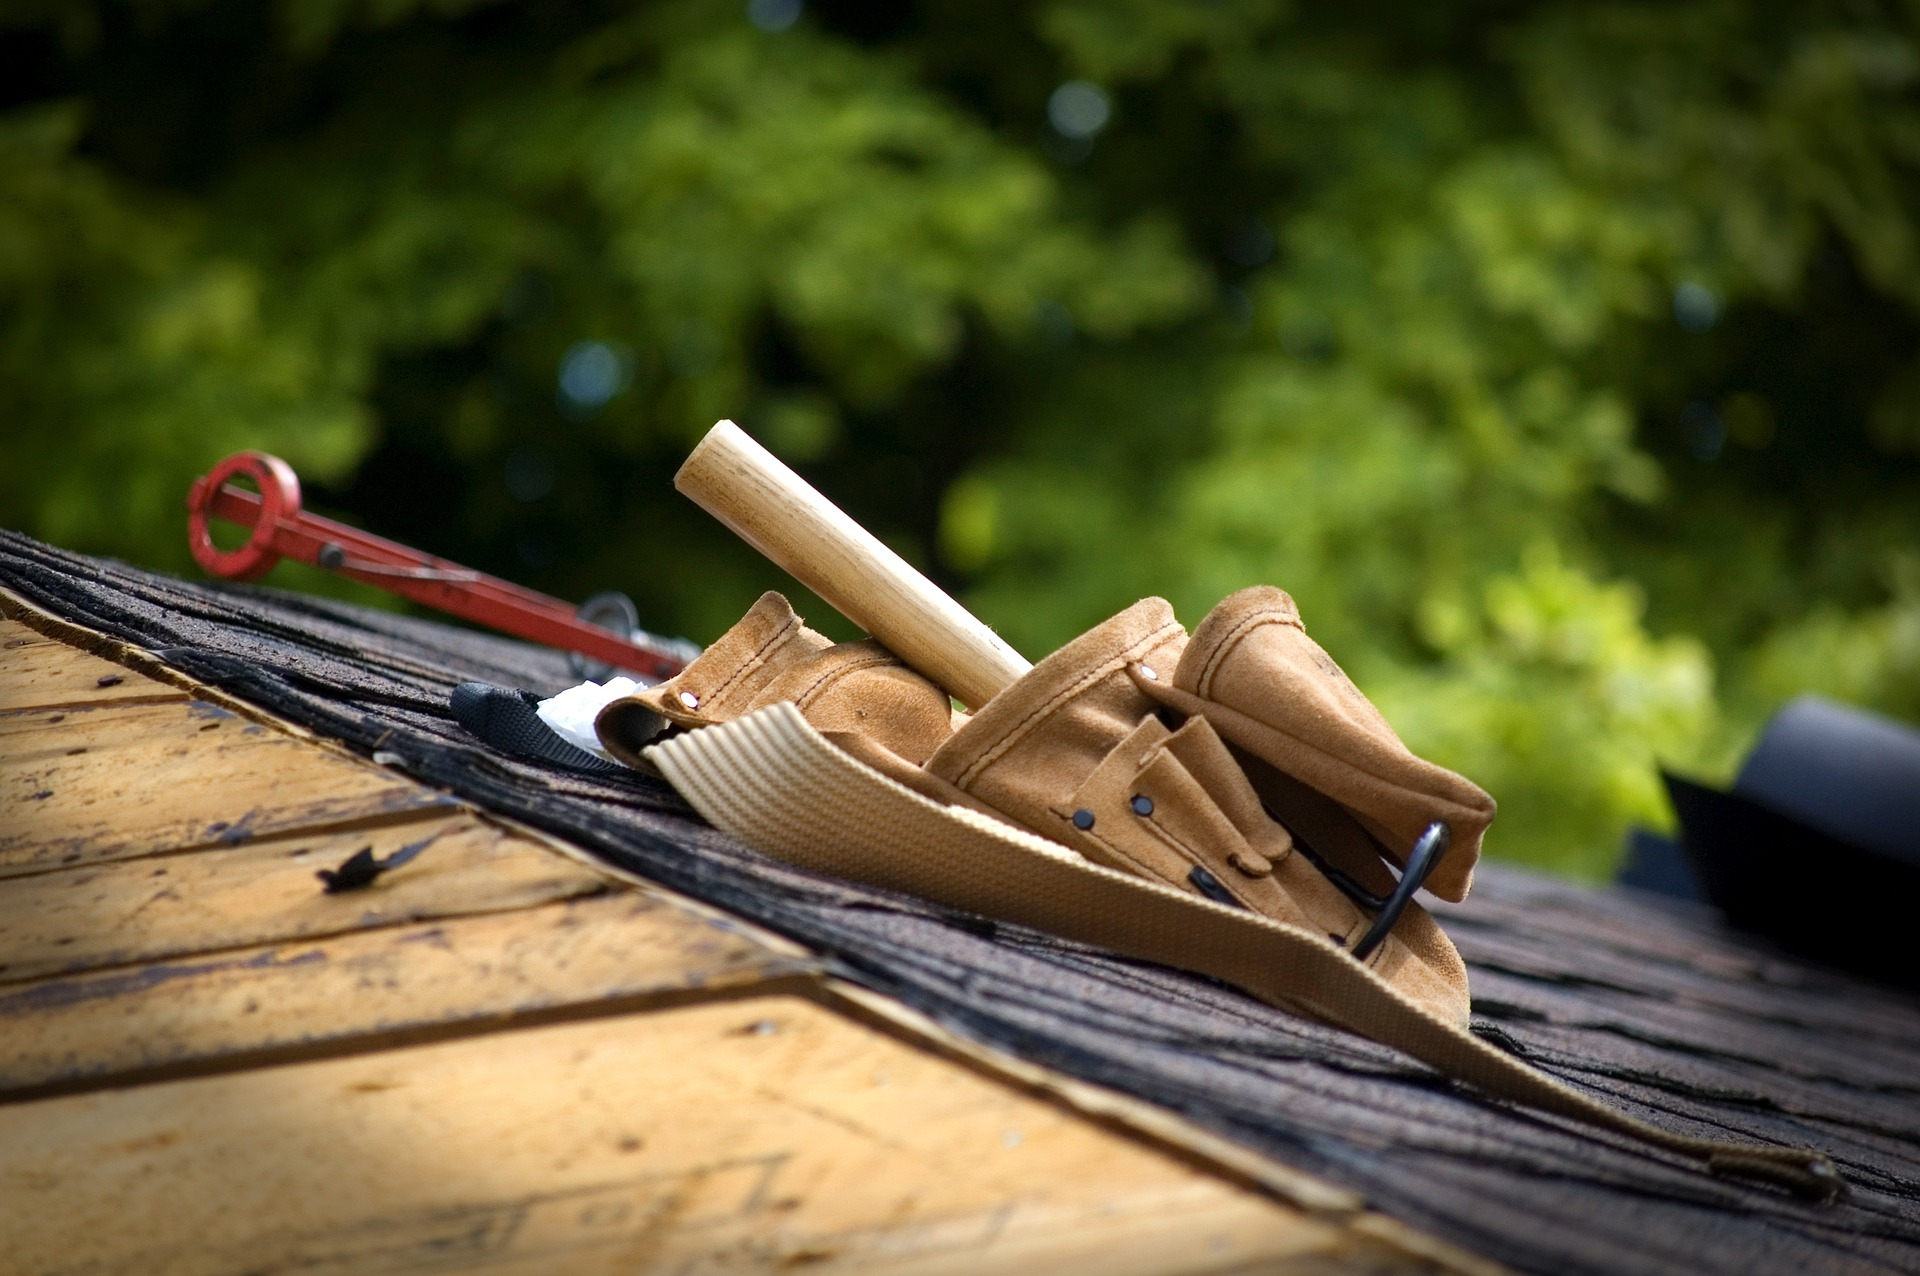 How to choose what roofing material is right for your home?